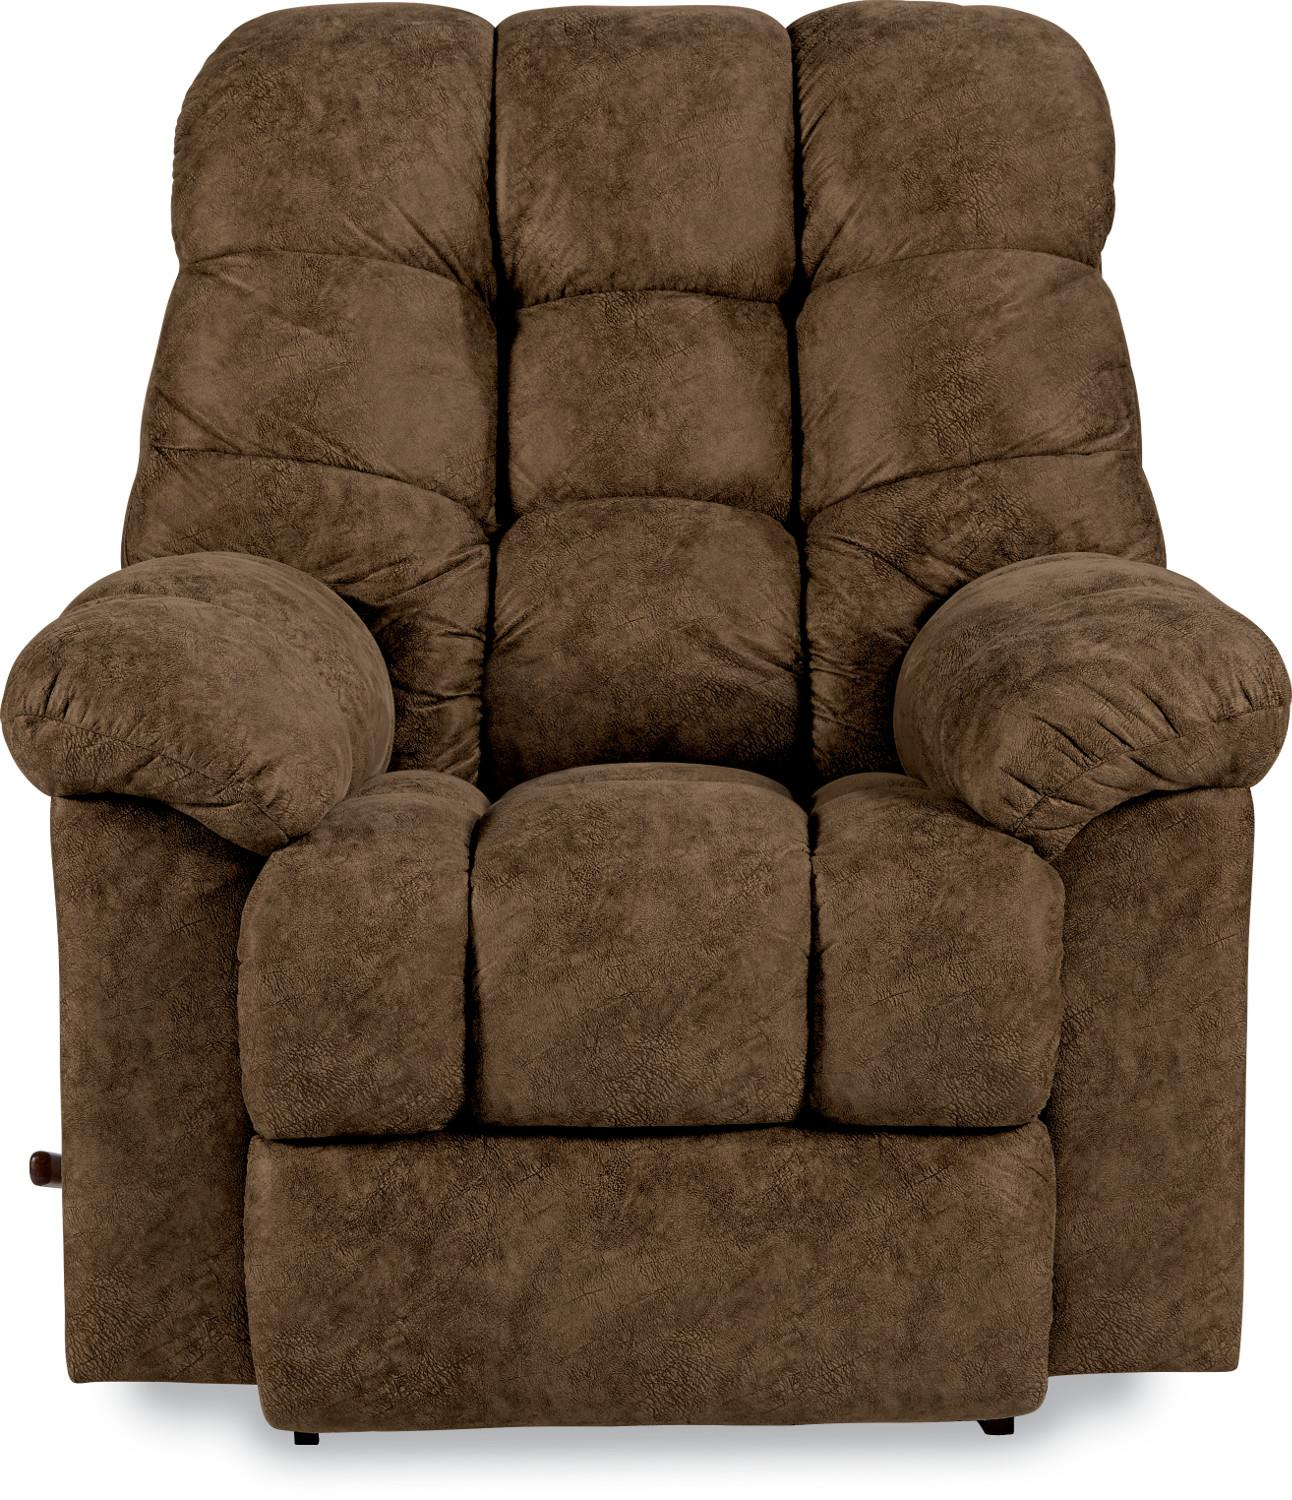 Gibson Wall Recliner by La-Z-Boy at Jordan's Home Furnishings